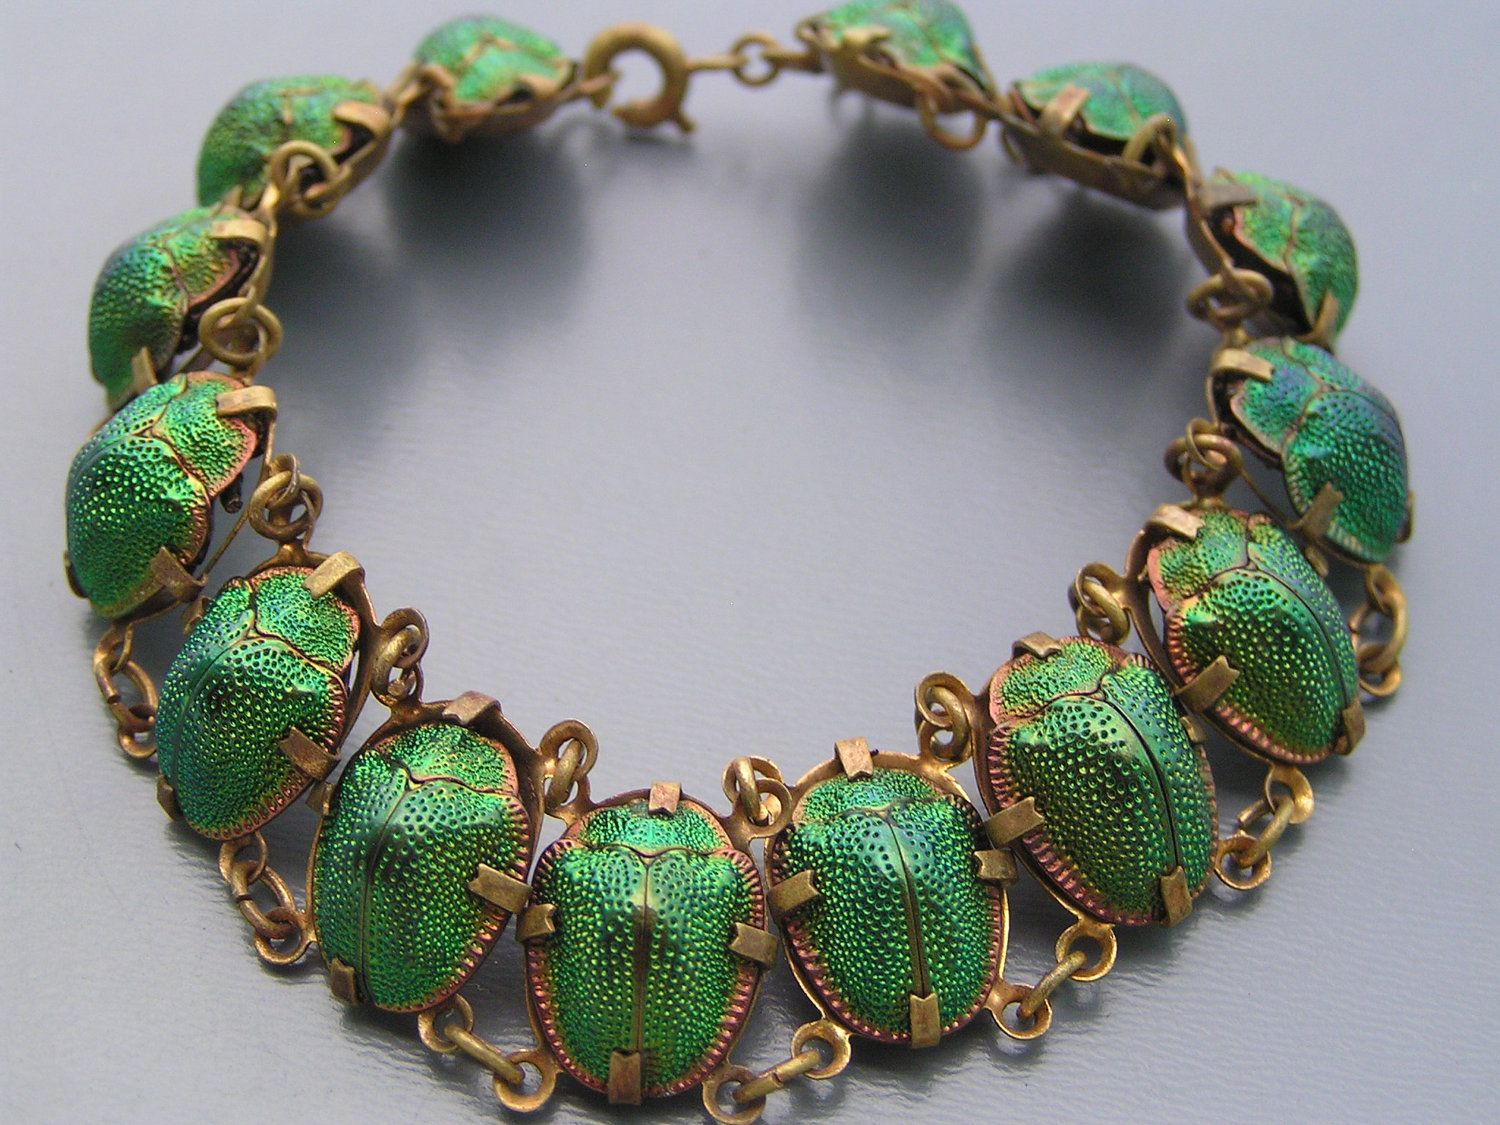 Pics For > Egyptian Scarab Beetle Jewelry